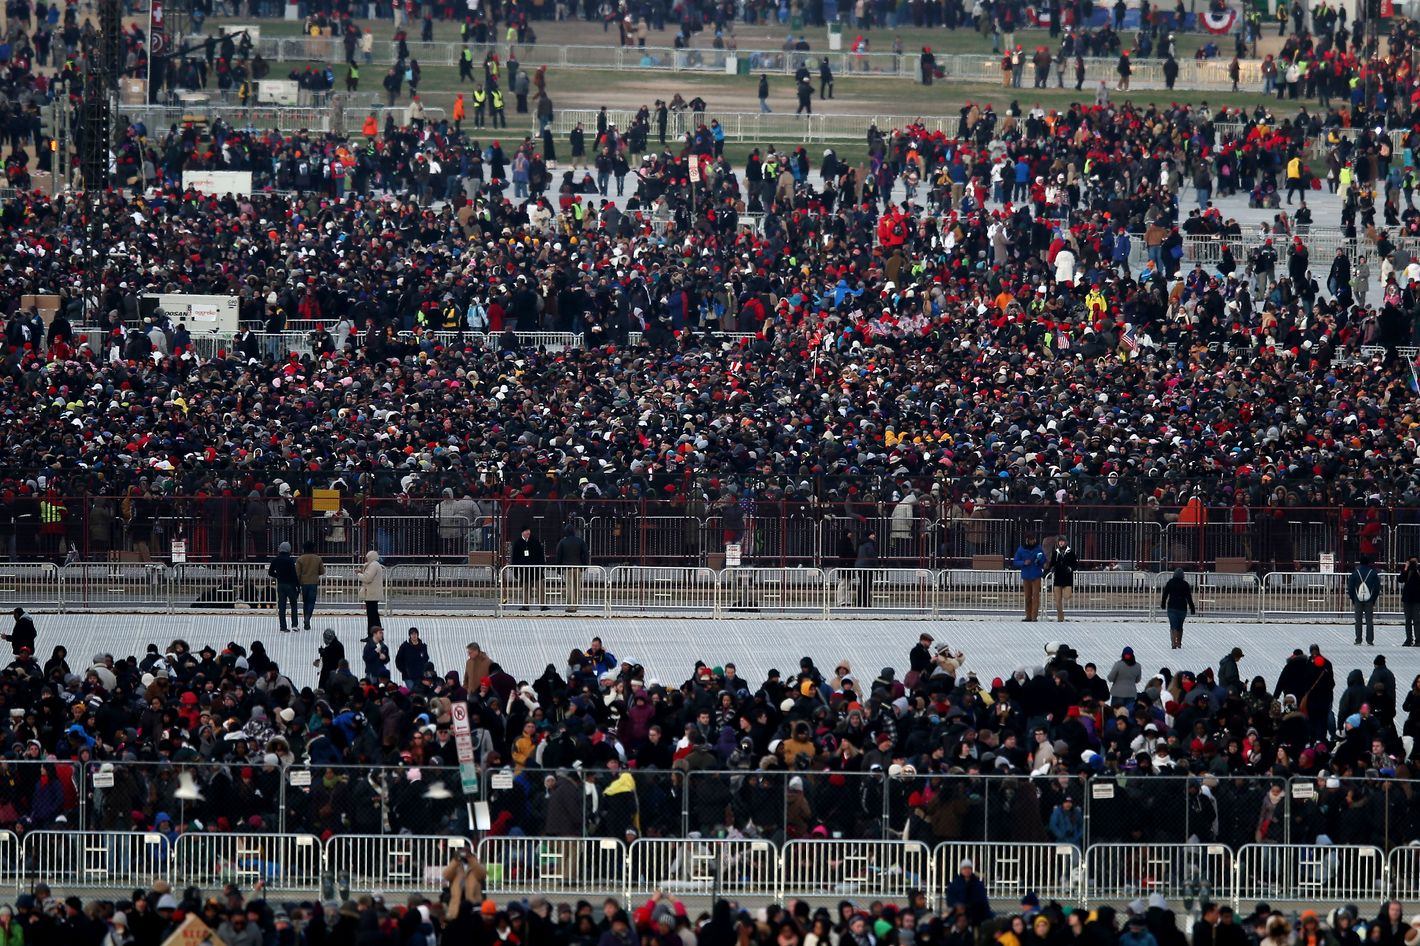 People begin to gather at the national mall before the presidential inauguration on the West Front of the U.S. Capitol January 21, 2013 in Washington, DC.   Barack Obama was re-elected for a second term as President of the United States.